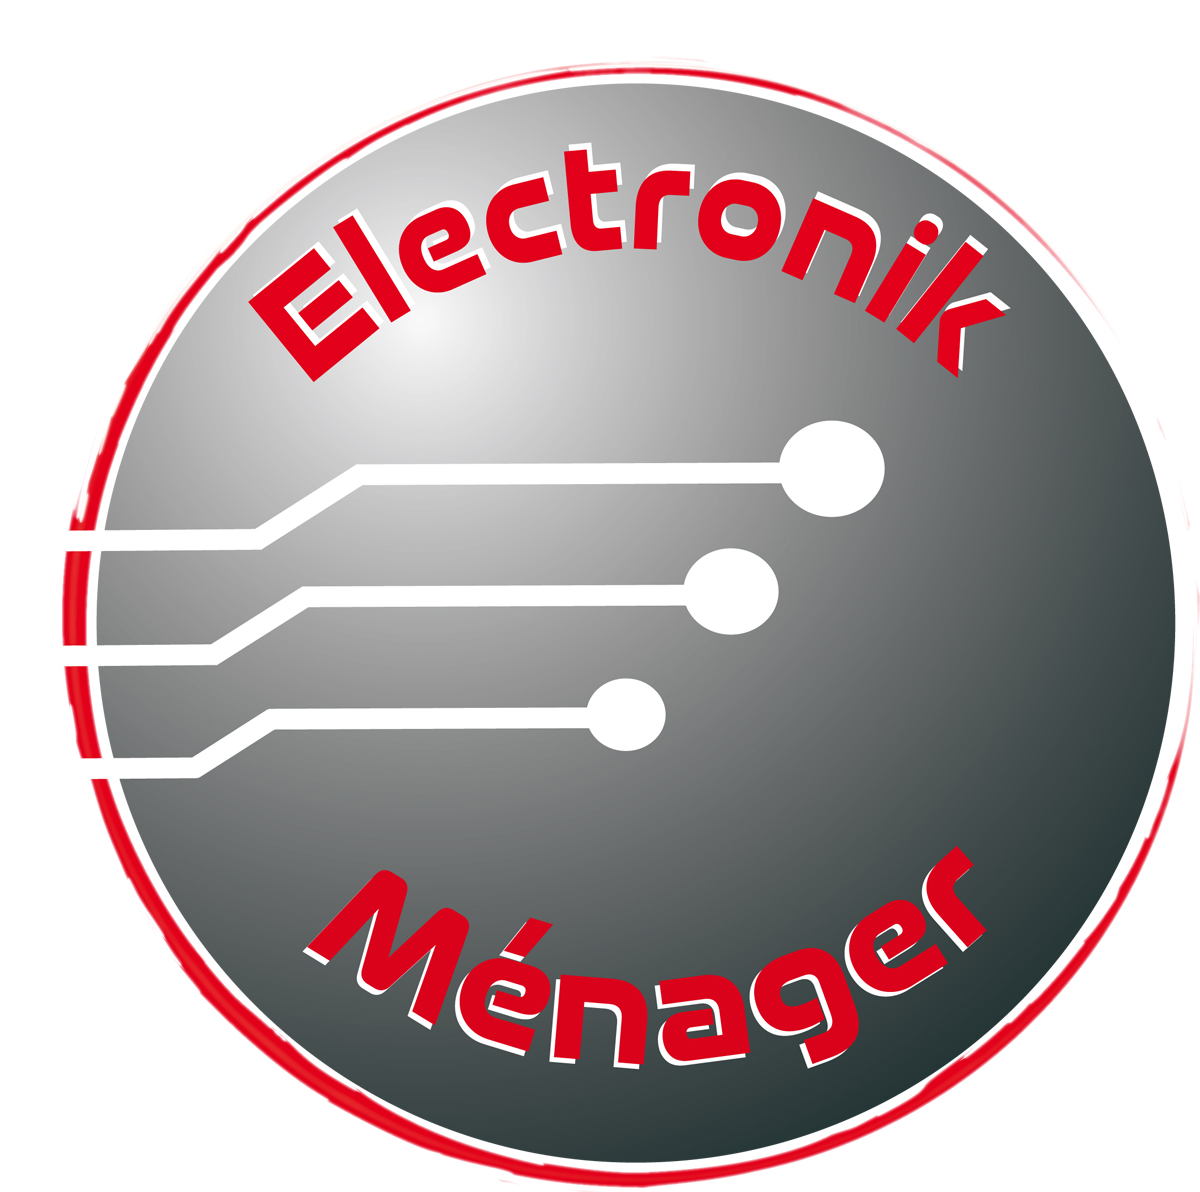 Electronik ménager